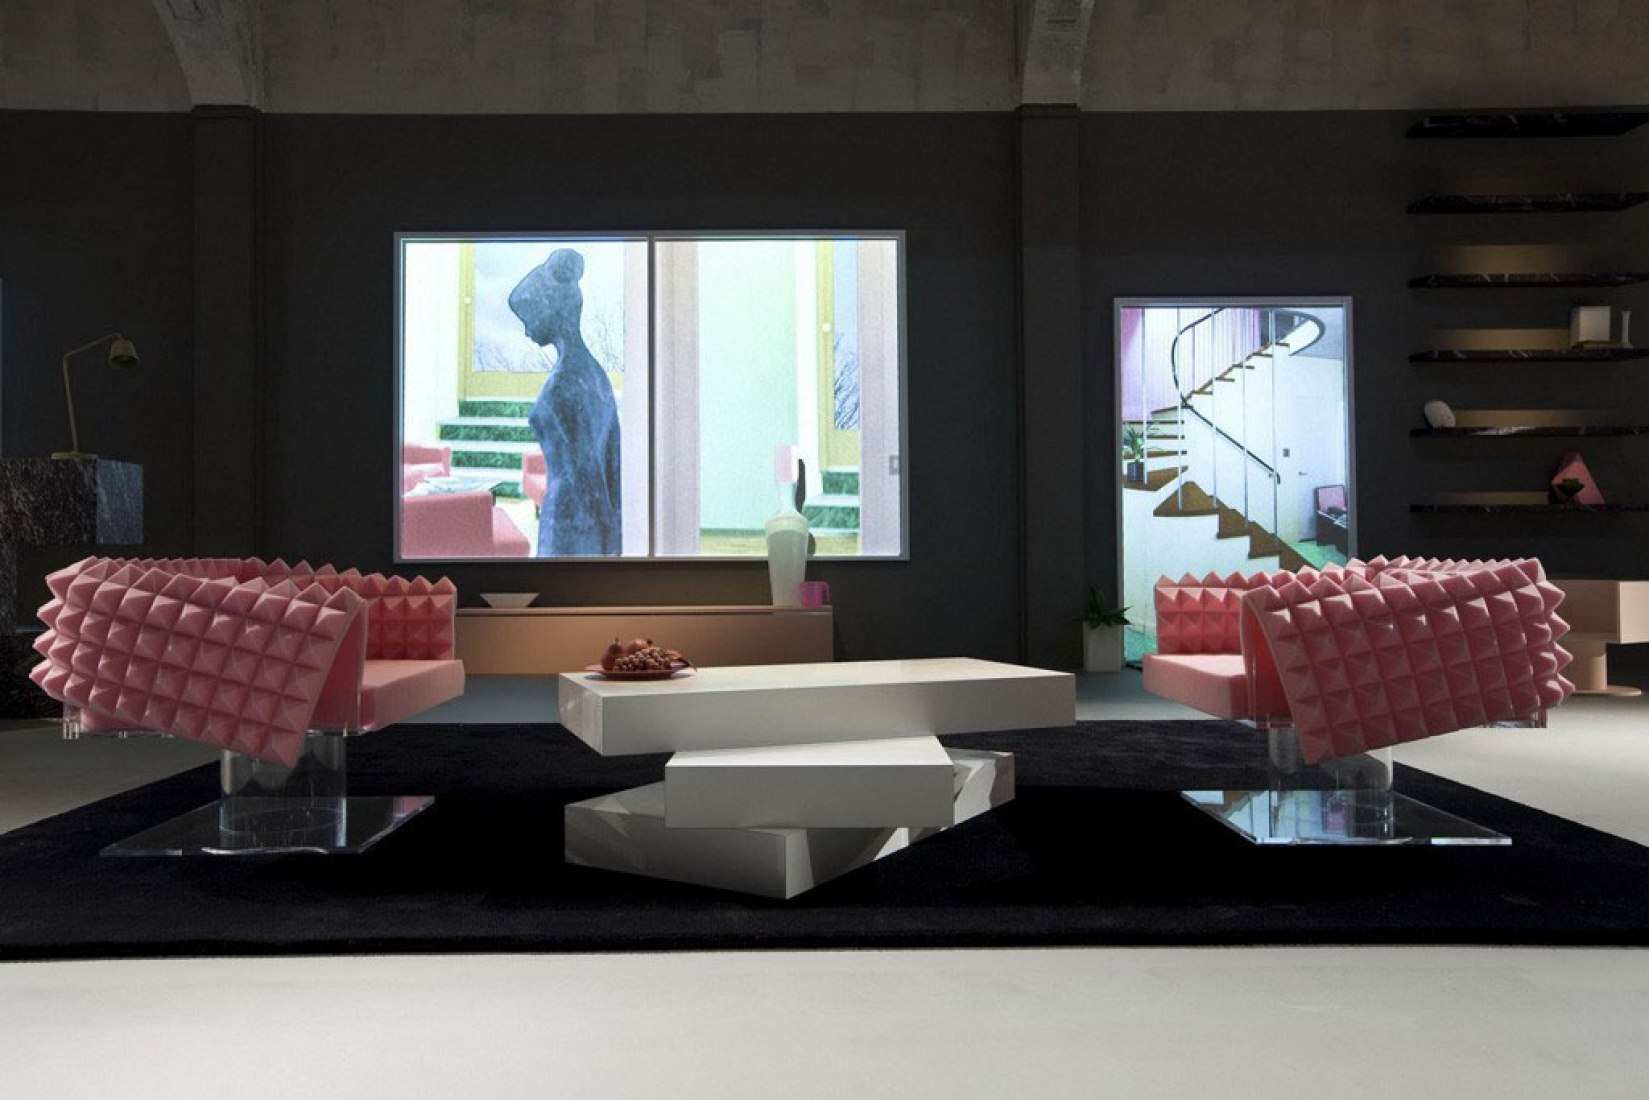 Furniture by OMA during the catwalk Prada Fall/Winter 2013 Menswear Show.